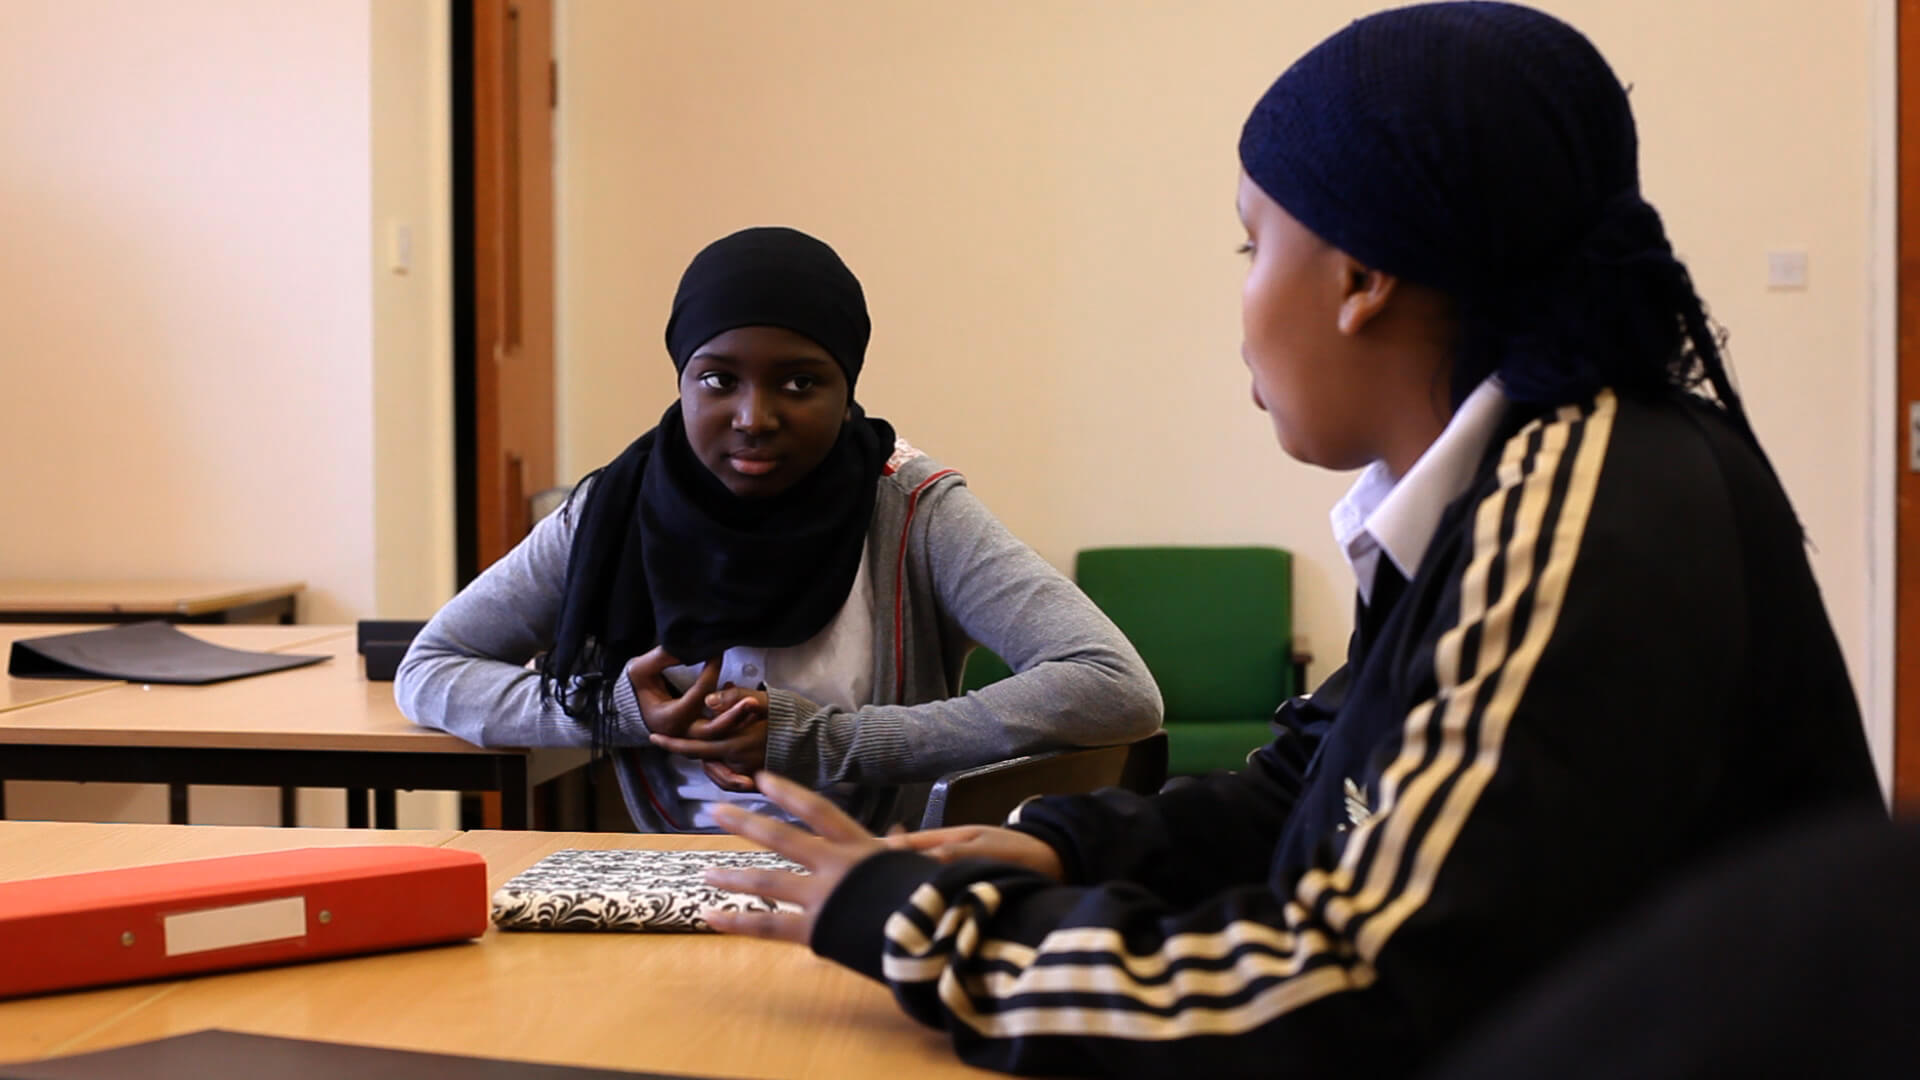 FGM is Always With Us – Experiences Perceptions and Beliefs of Women Affected by Female Genital Mutilation in London